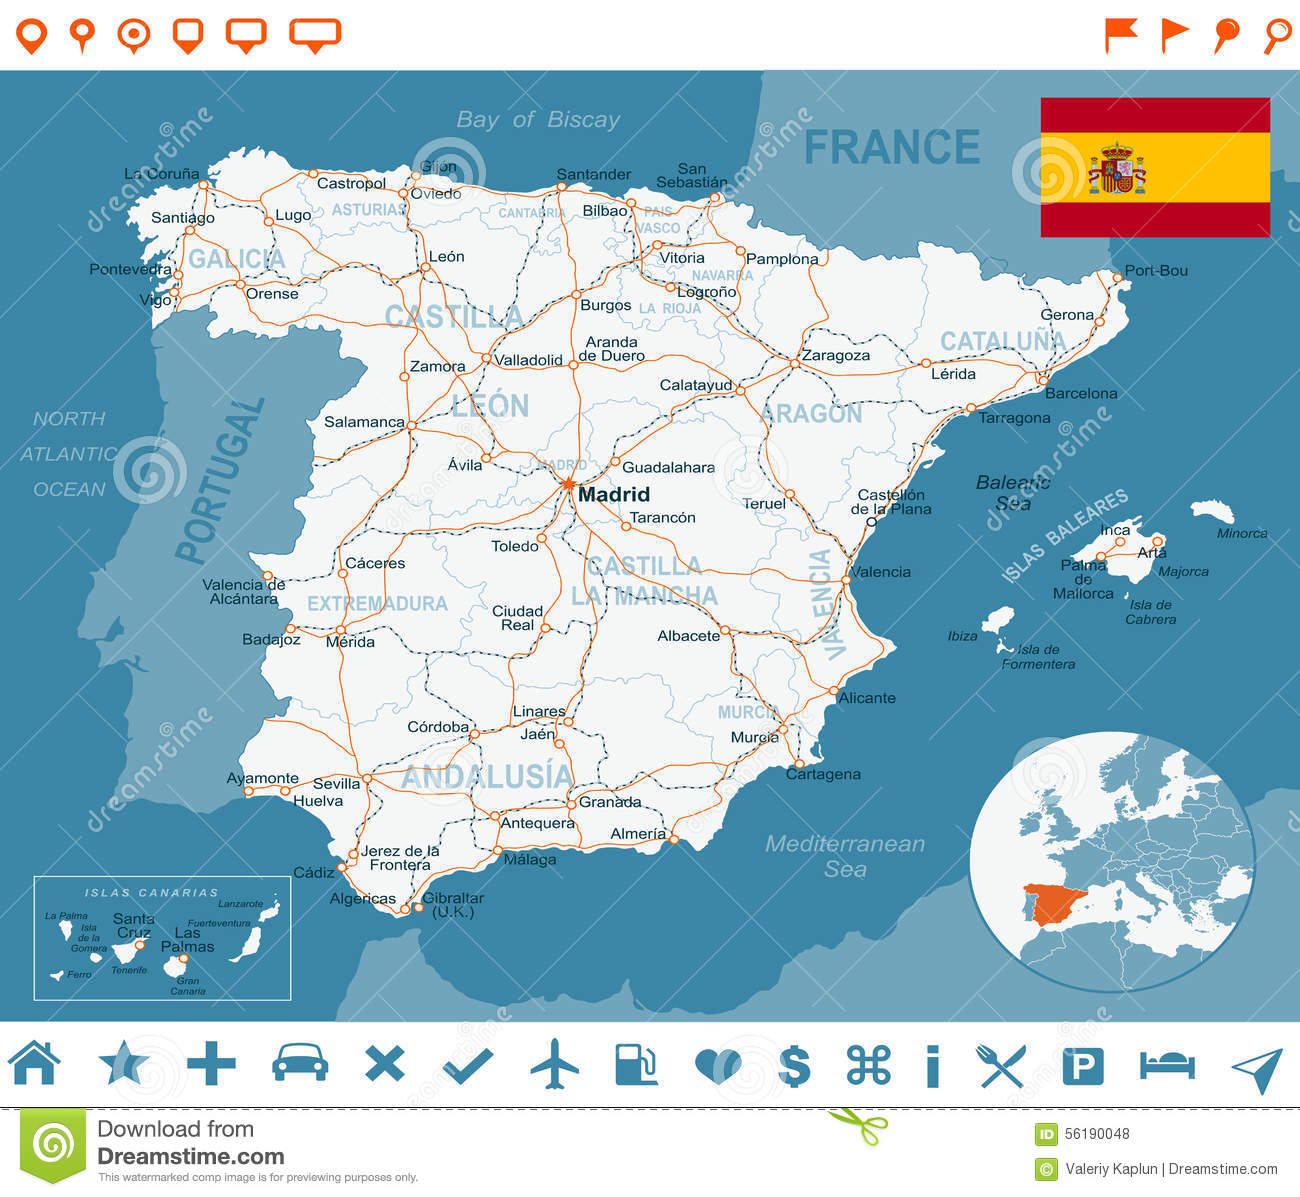 Spain - Map, Flag, Navigation Labels, Roads - Illustration ... on map of maspalomas spain, map of porto spain, map of torrejon spain, map of la manga spain, map of spain major cities, map of santander spain, map of toledo spain, map of irun spain, map of rioja region spain, map of ciudad real spain, map of palamos spain, map of santillana spain, map of priorat spain, map of gava spain, map of ribera del duero spain, map of cadiz spain, map of nerja spain, map of sanlucar spain, large map of spain, map of spain with regions,